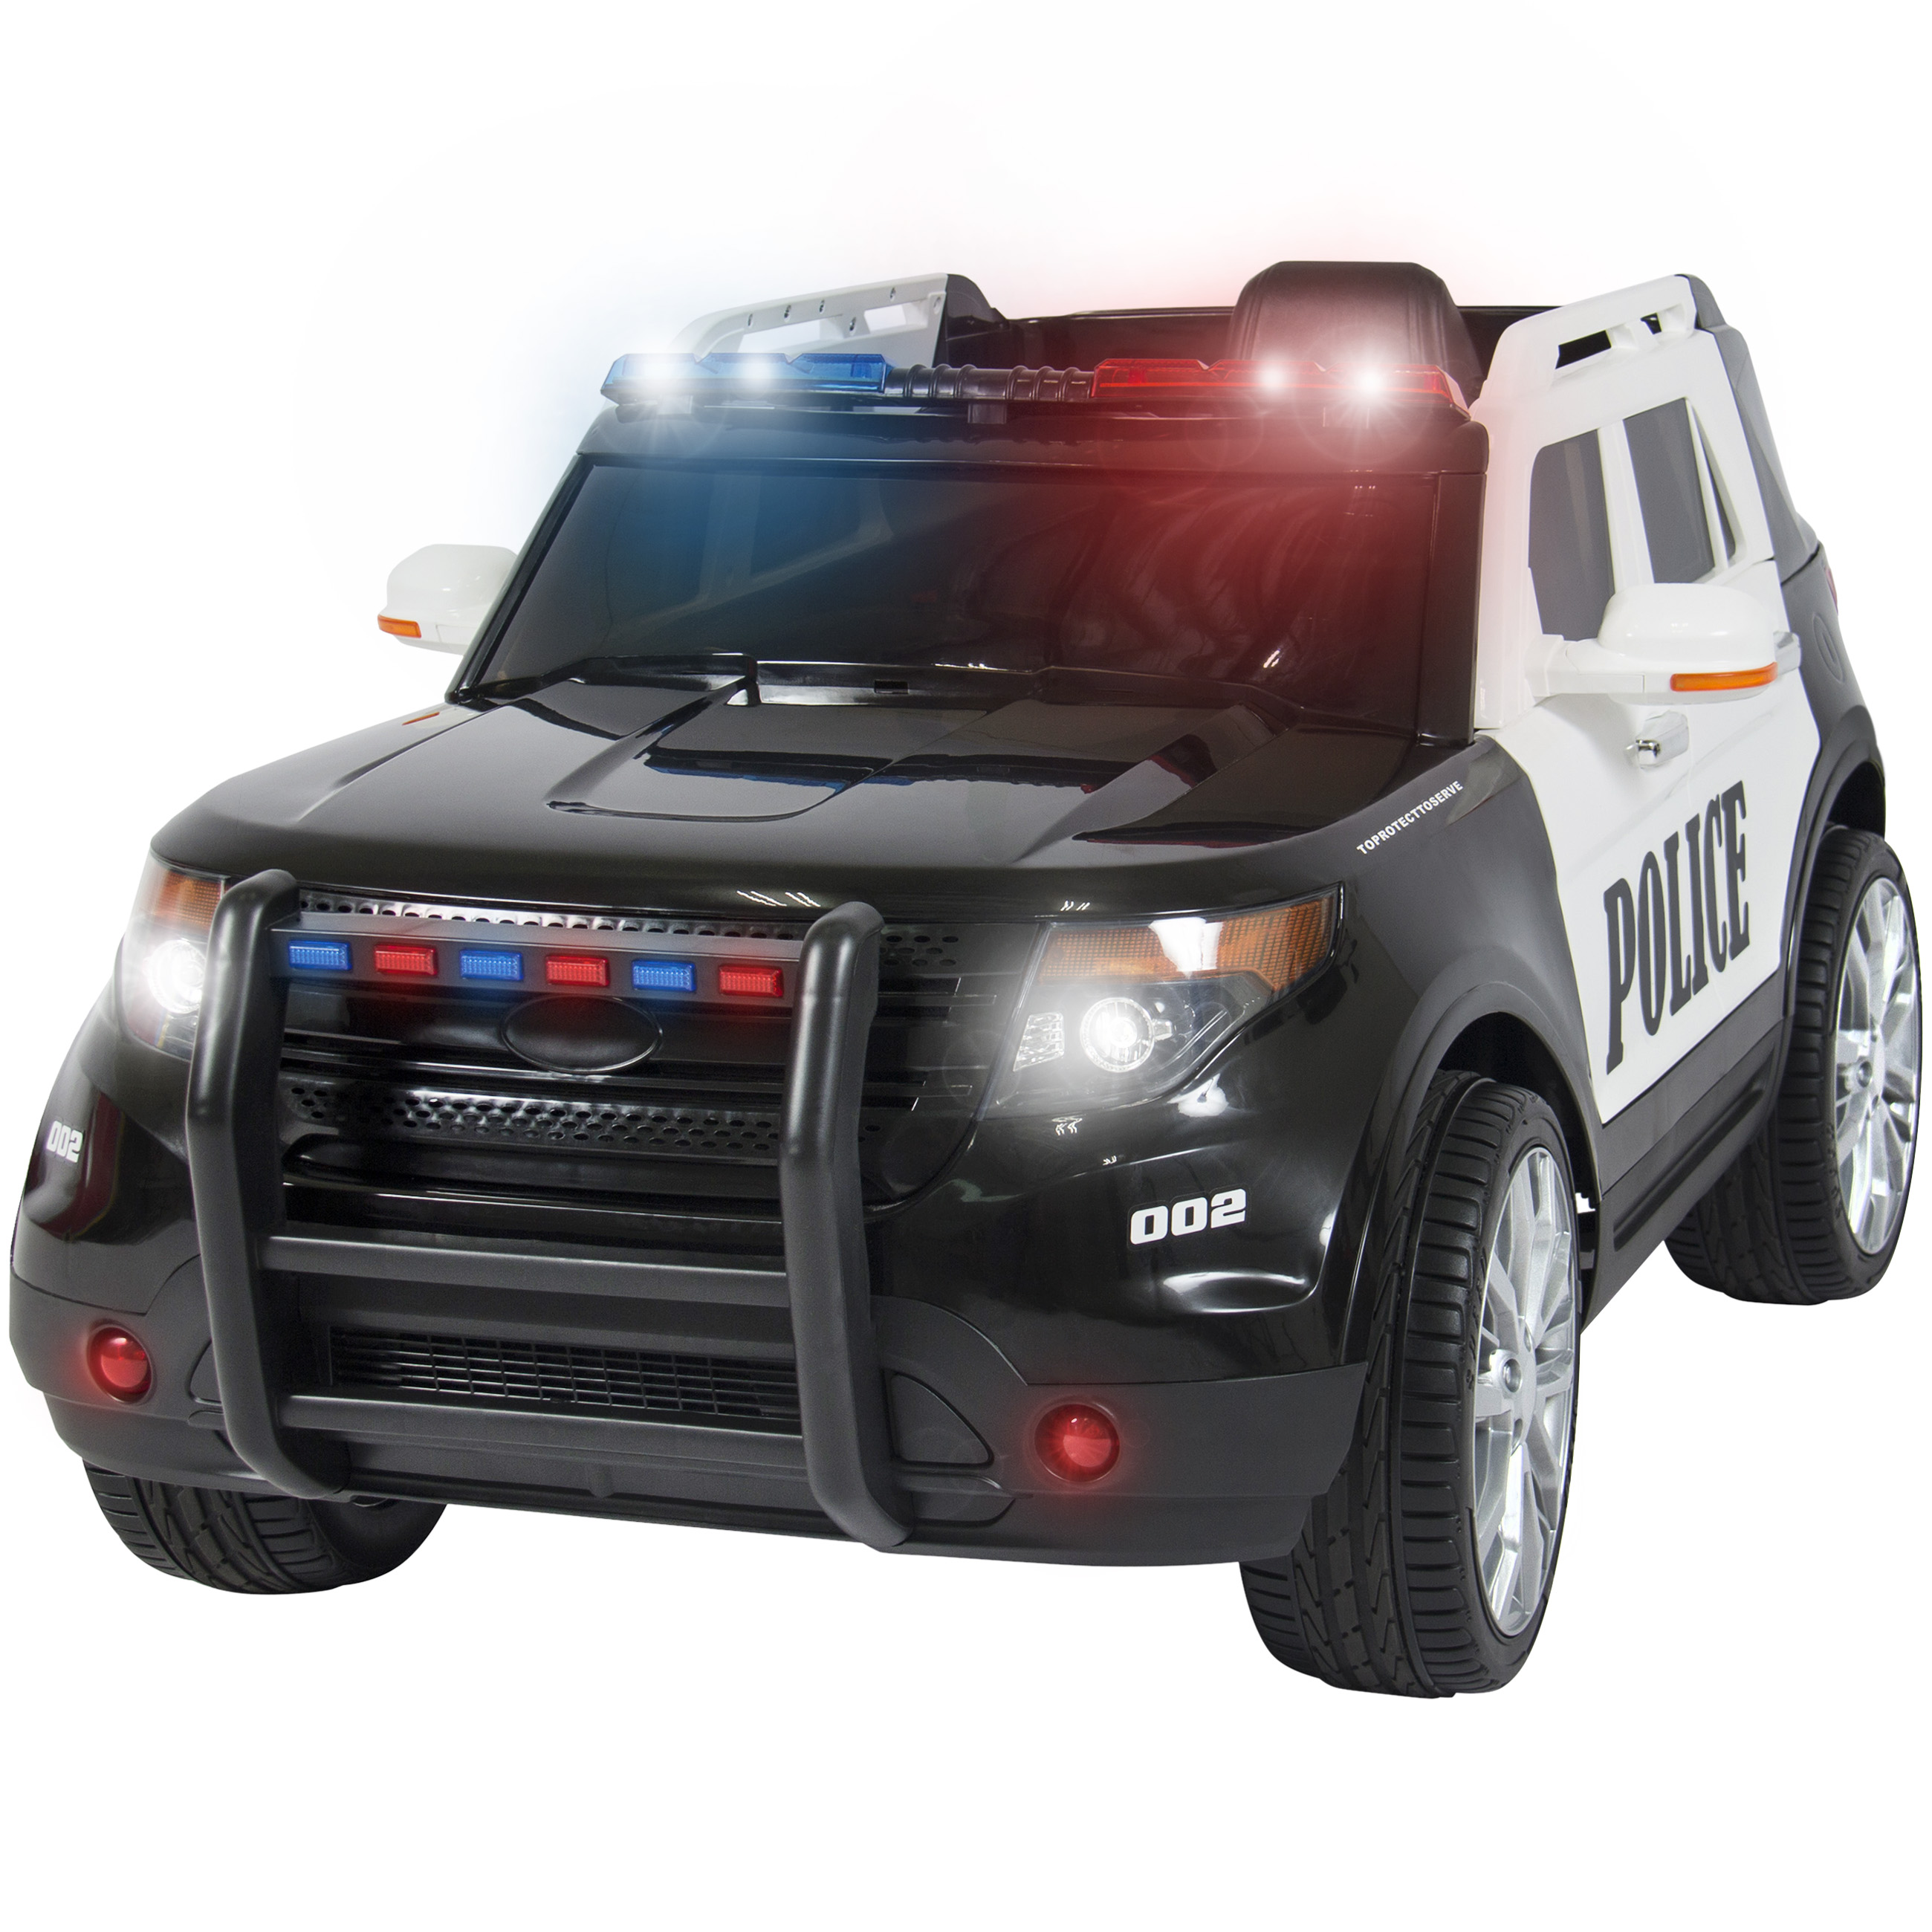 Best Choice Products 12V Kids Powered Ford Style Police RC Remote Ride-On SUV Car w/ Parent Control, 2 Speeds, LED Lights, AUX, Sirens - Black